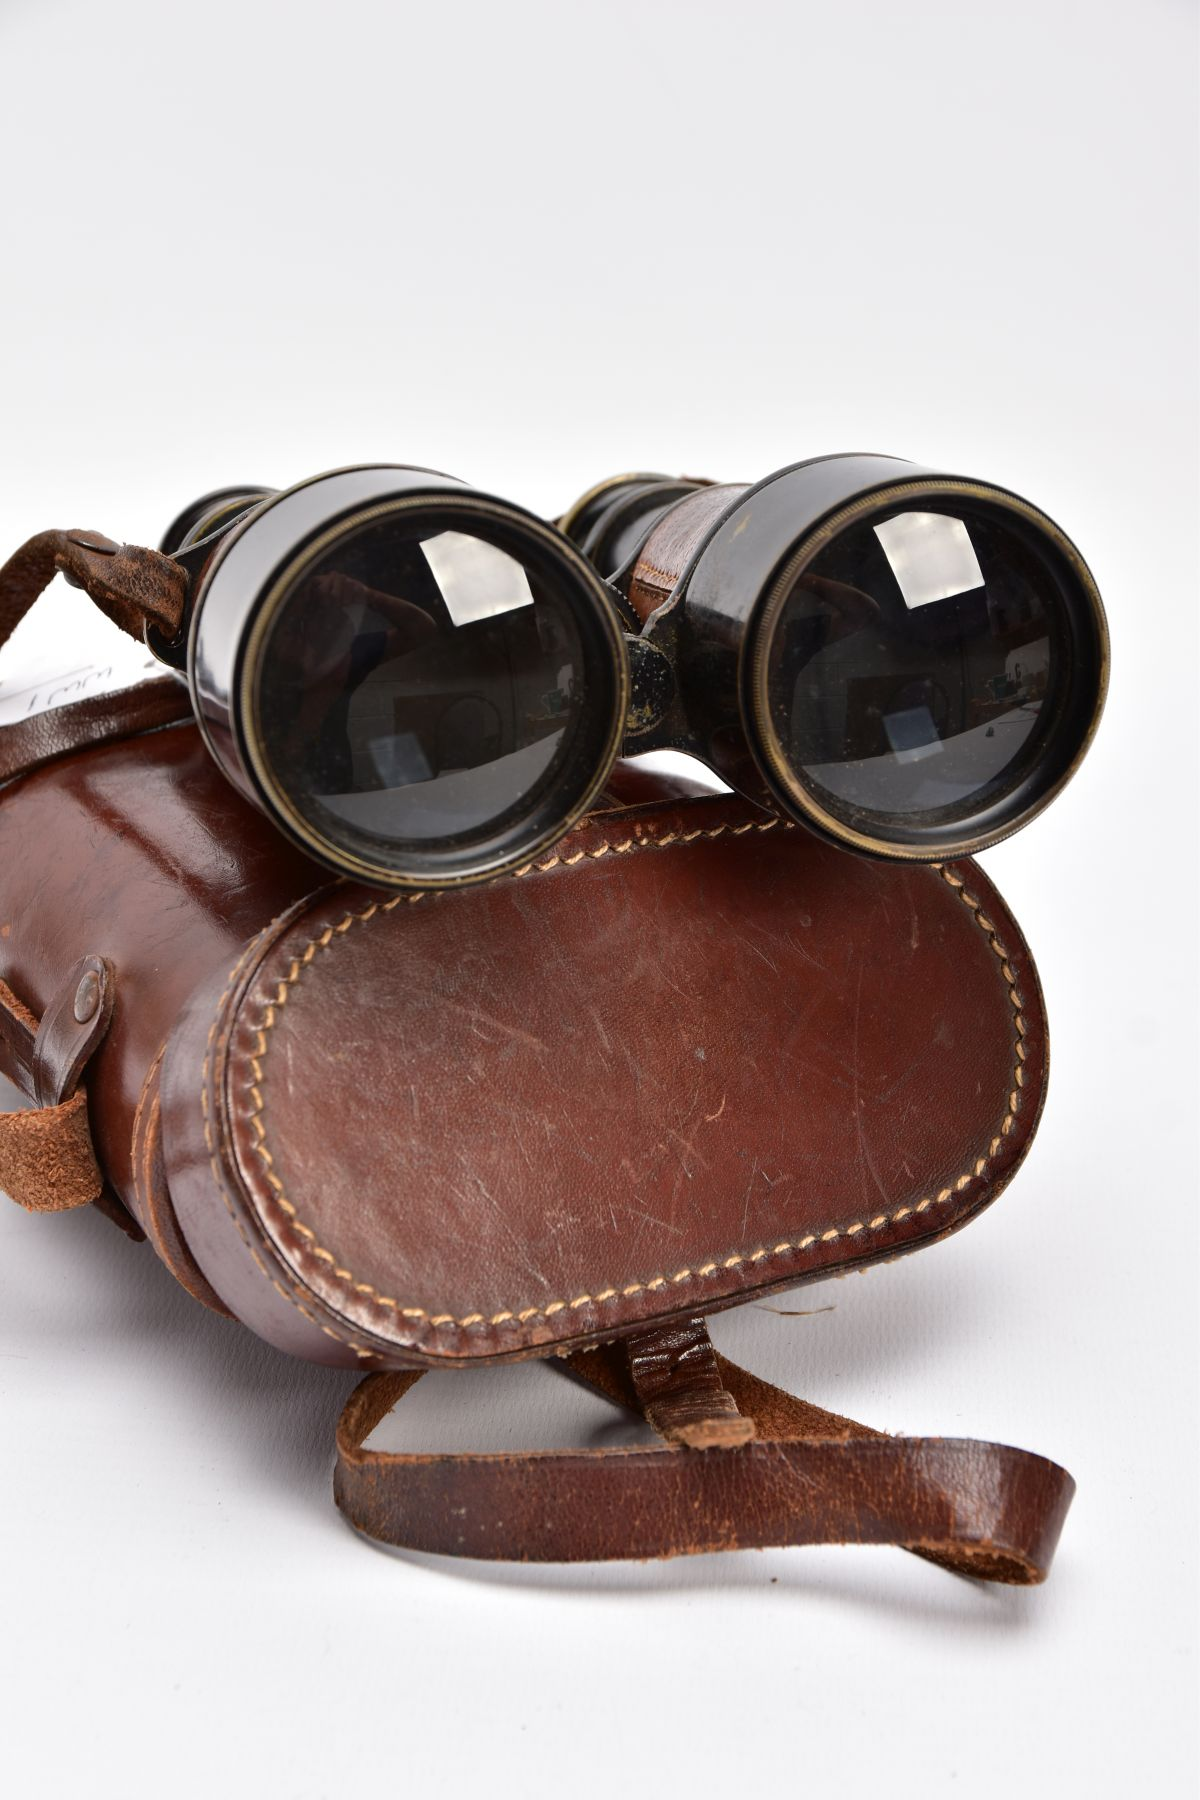 A BOXED PAIR OF FRENCH MADE MG (MINISTERE LA GUERE) WWI BINOCULARS, which are marked Mk V SPL & - Image 7 of 7